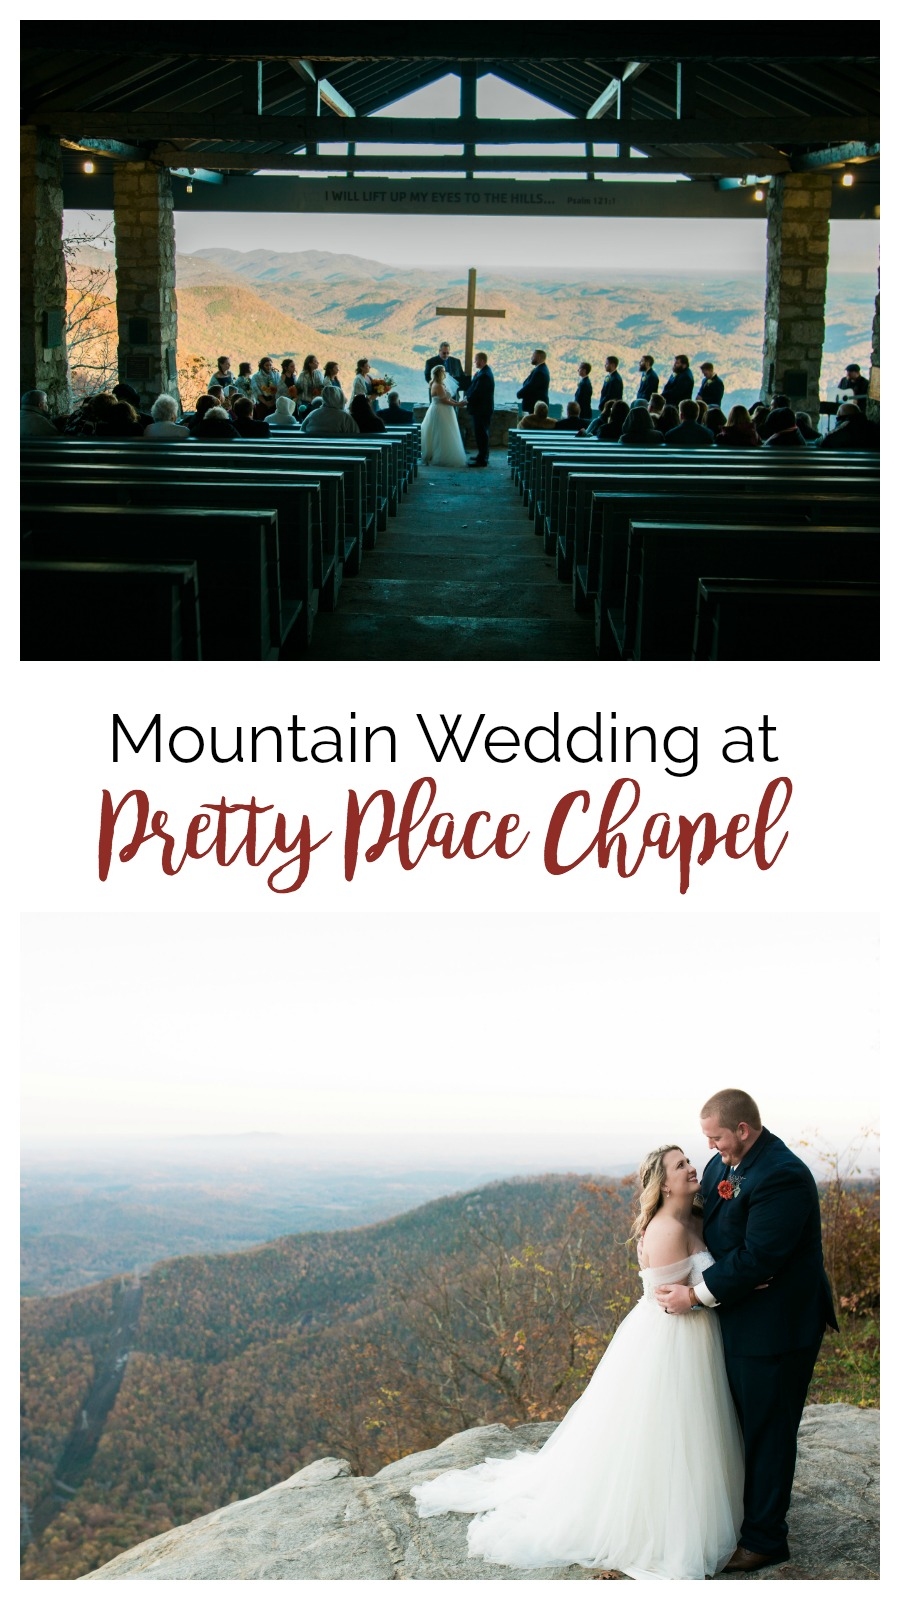 Ashlyn and Matt: Stunning Pretty Place Wedding in Upstate South Carolina | Palmetto State Weddings | mountain wedding in South Carolina | unique wedding locations | best places to get married in South Carolina | Southern wedding locations